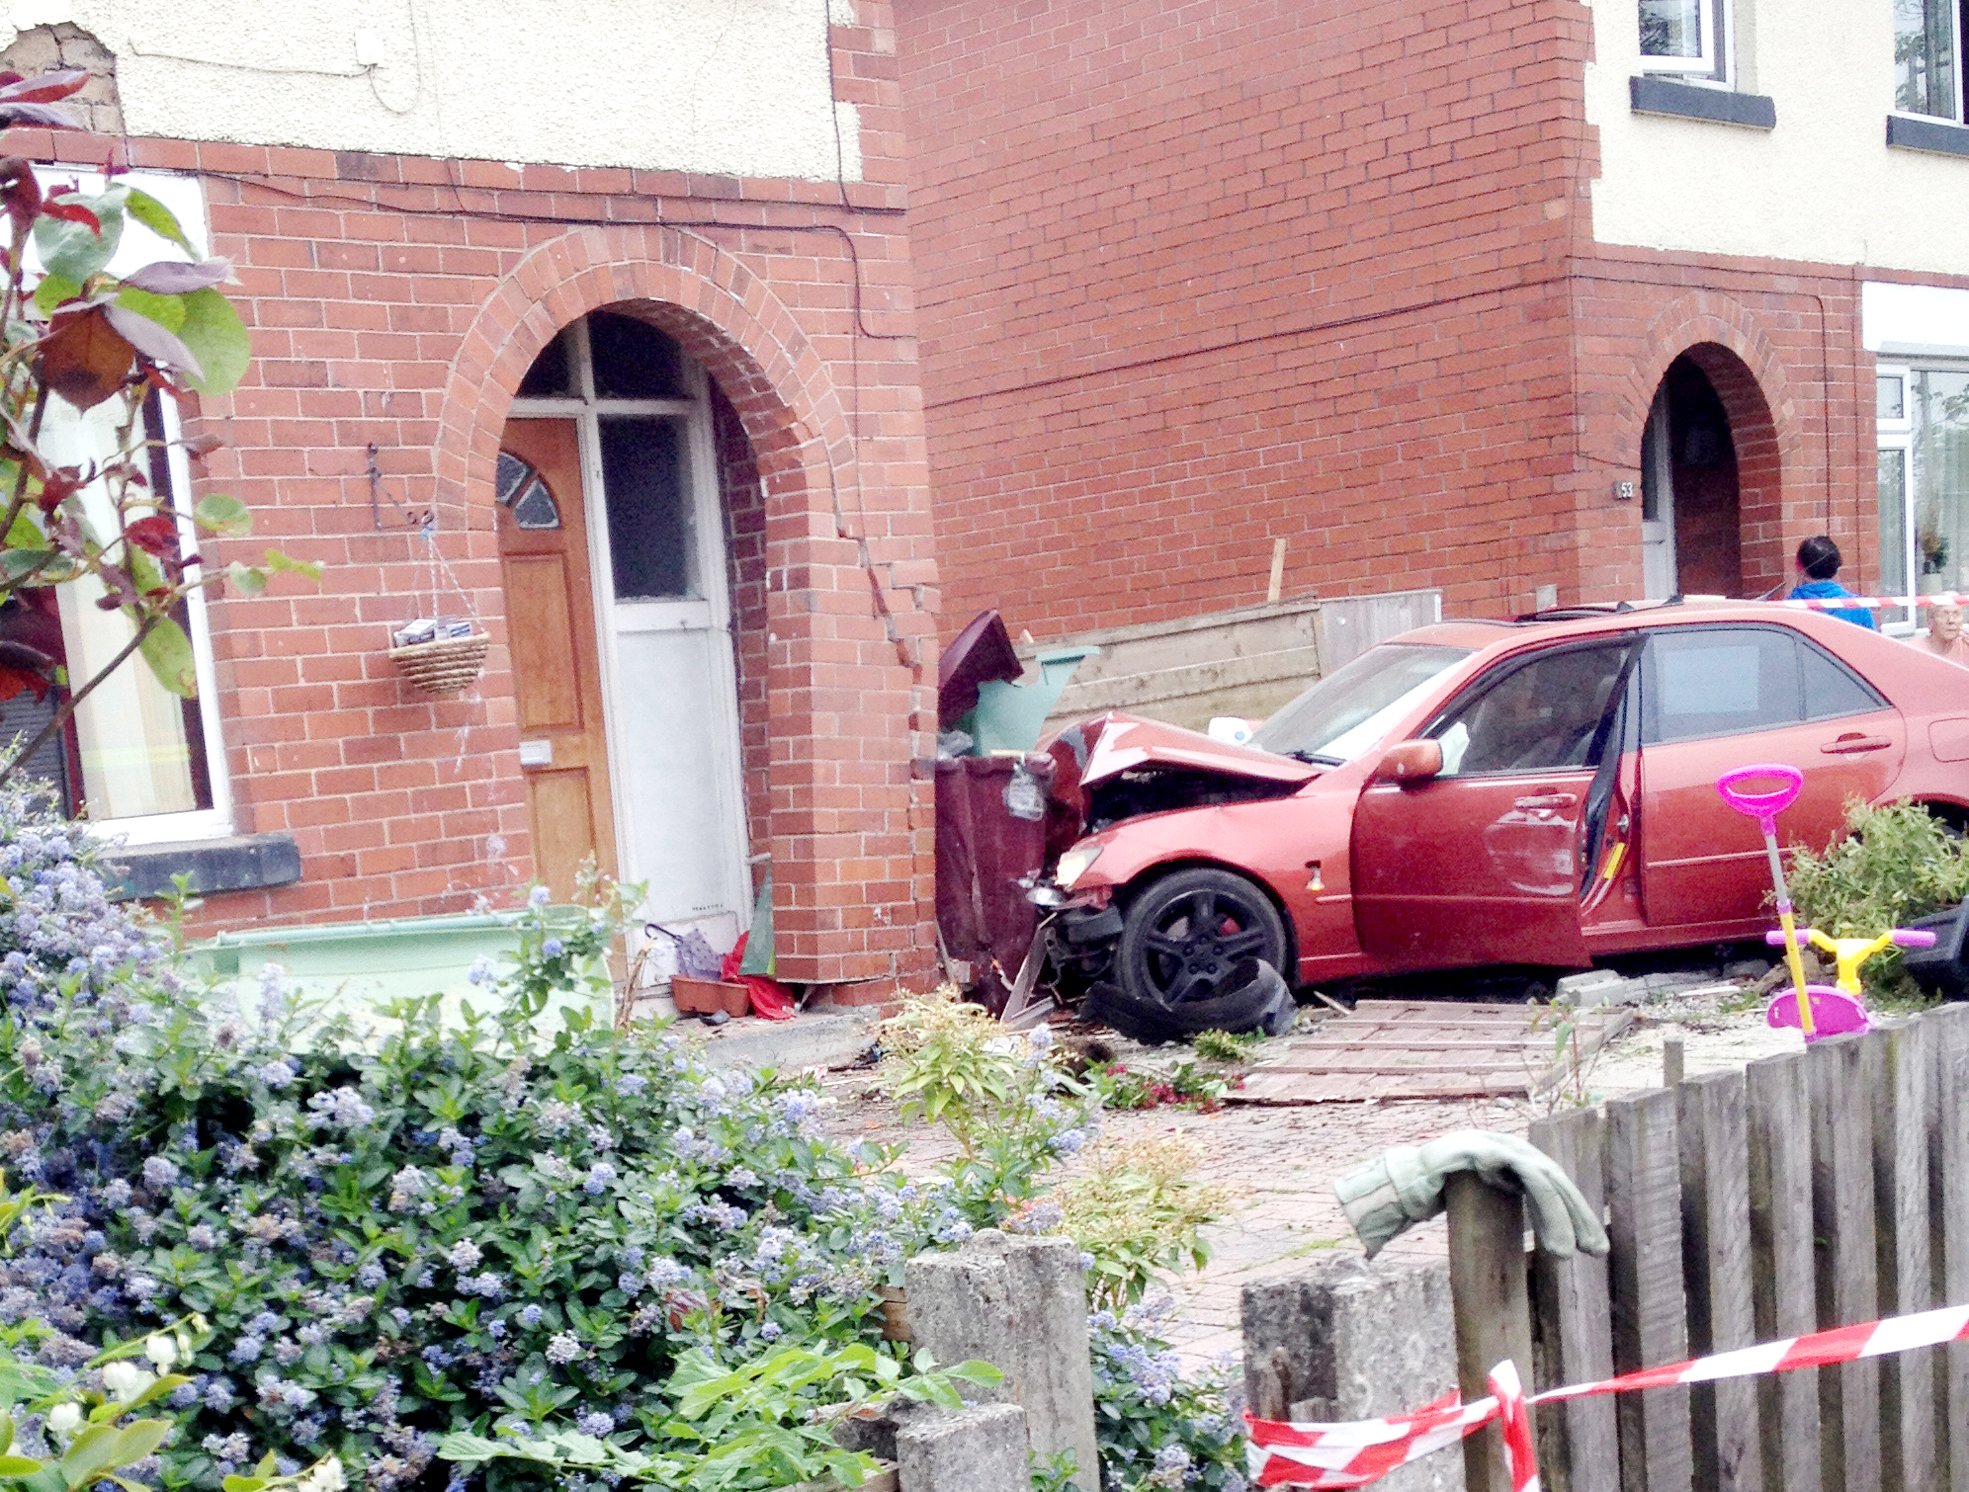 Family 'inches from death' as car ploughs into their house